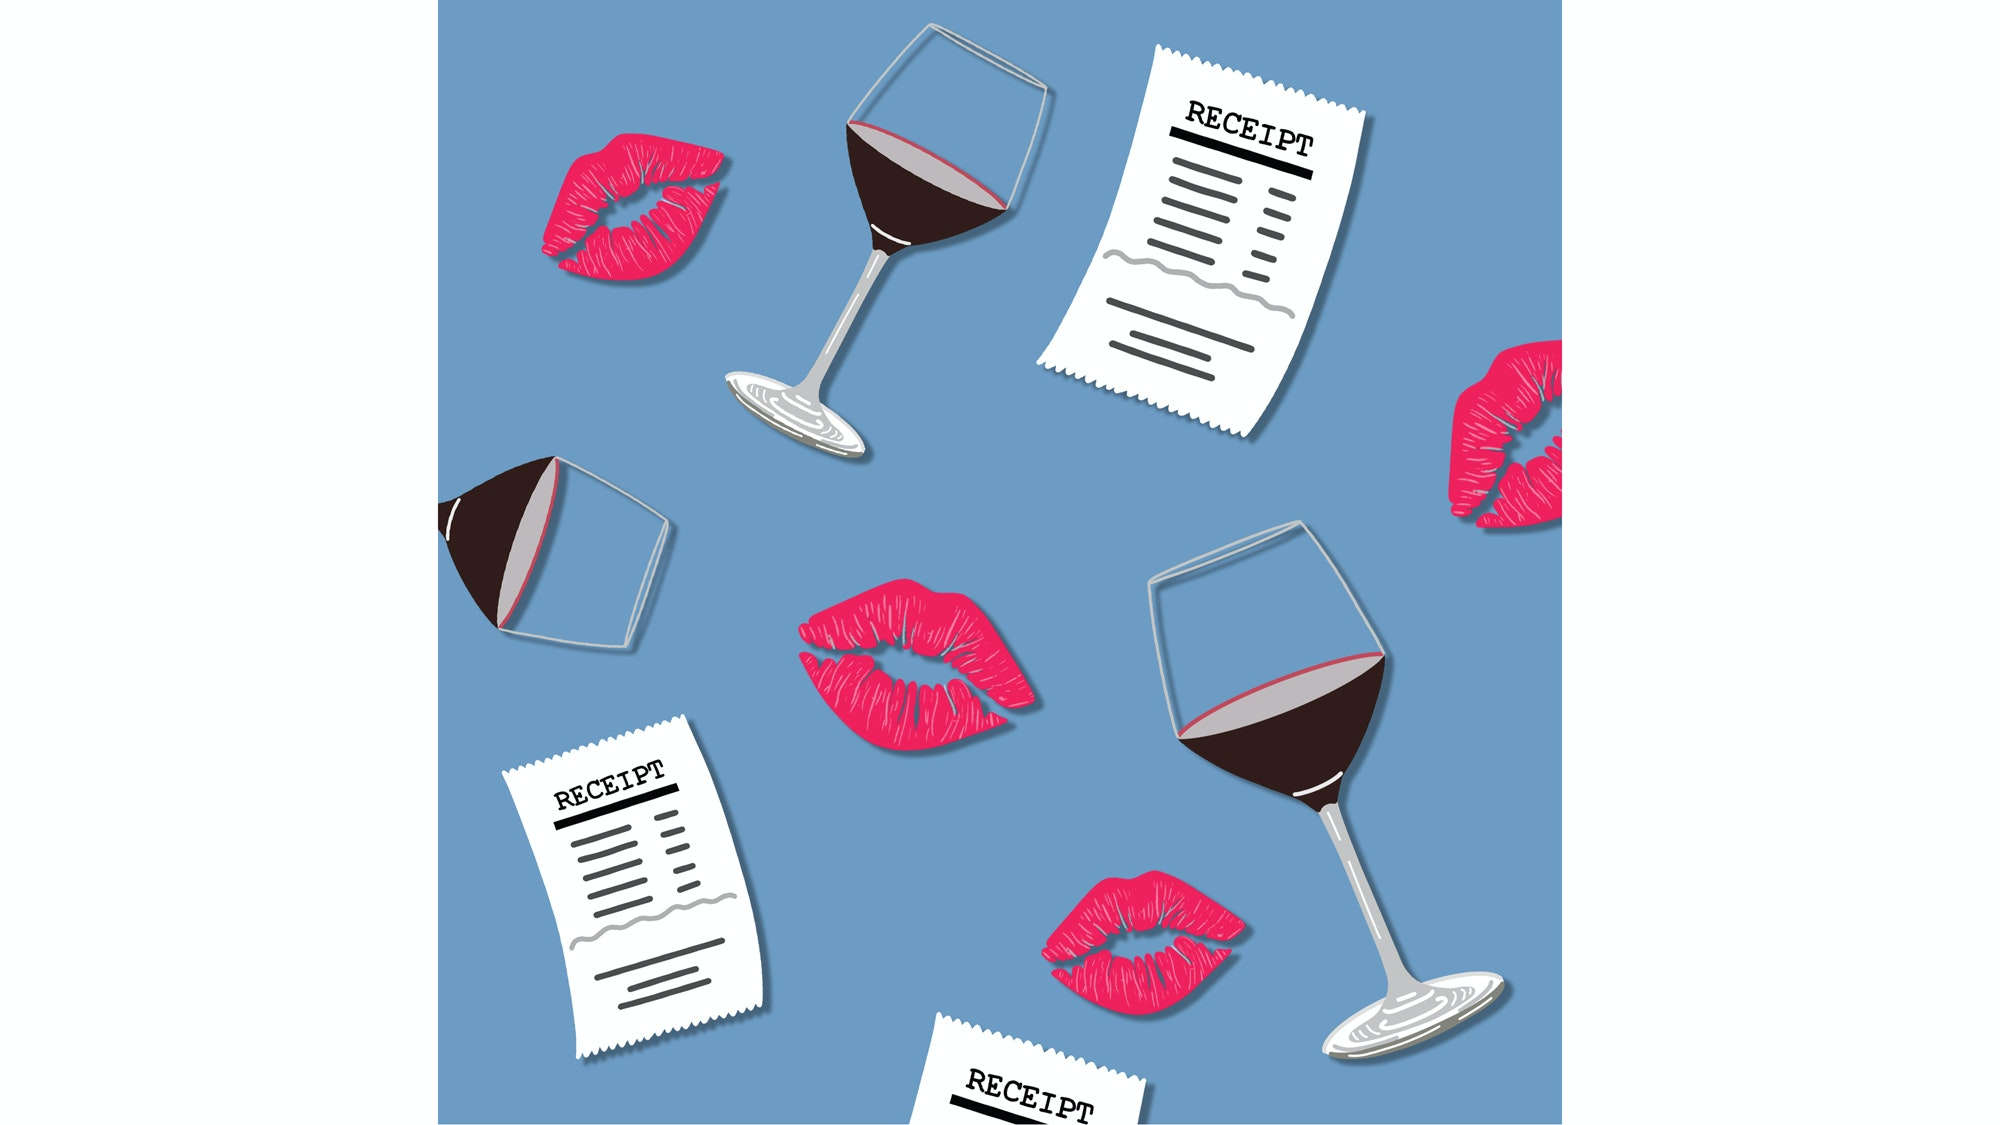 illustration of wine glasses, lips, and receipts